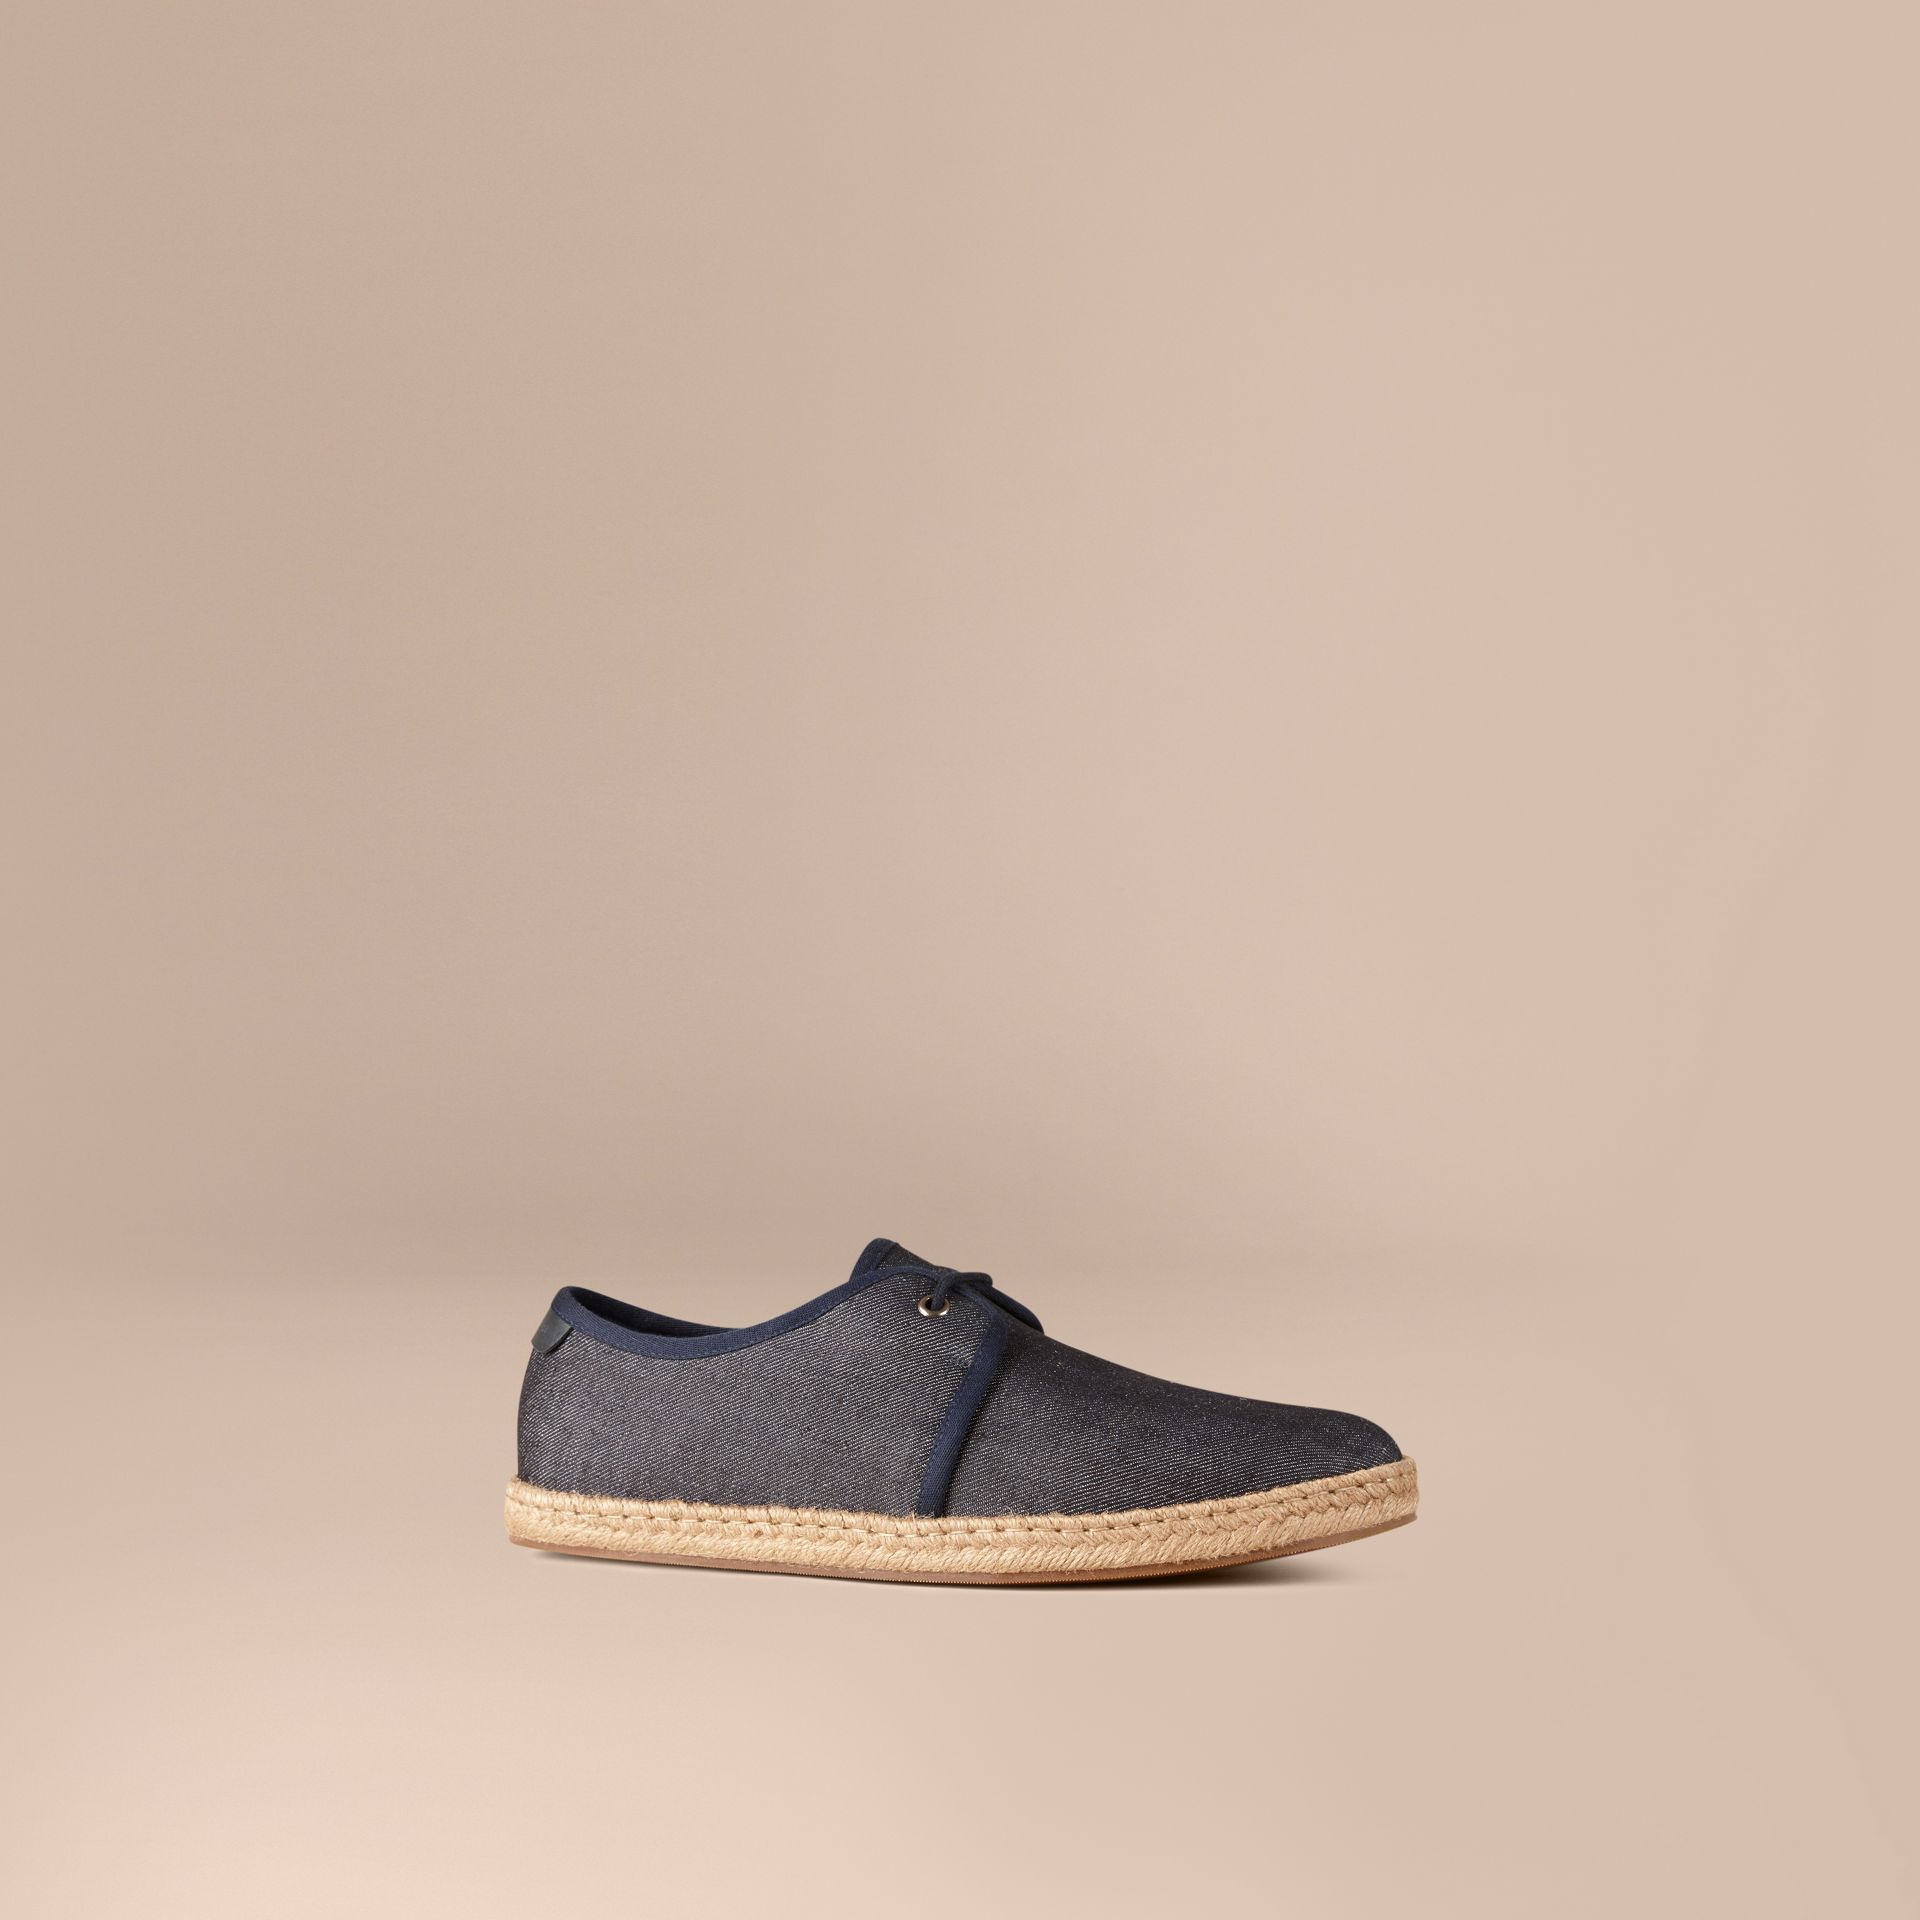 Navy Japanese Linen Lace-up Espadrilles Navy - gallery image 1